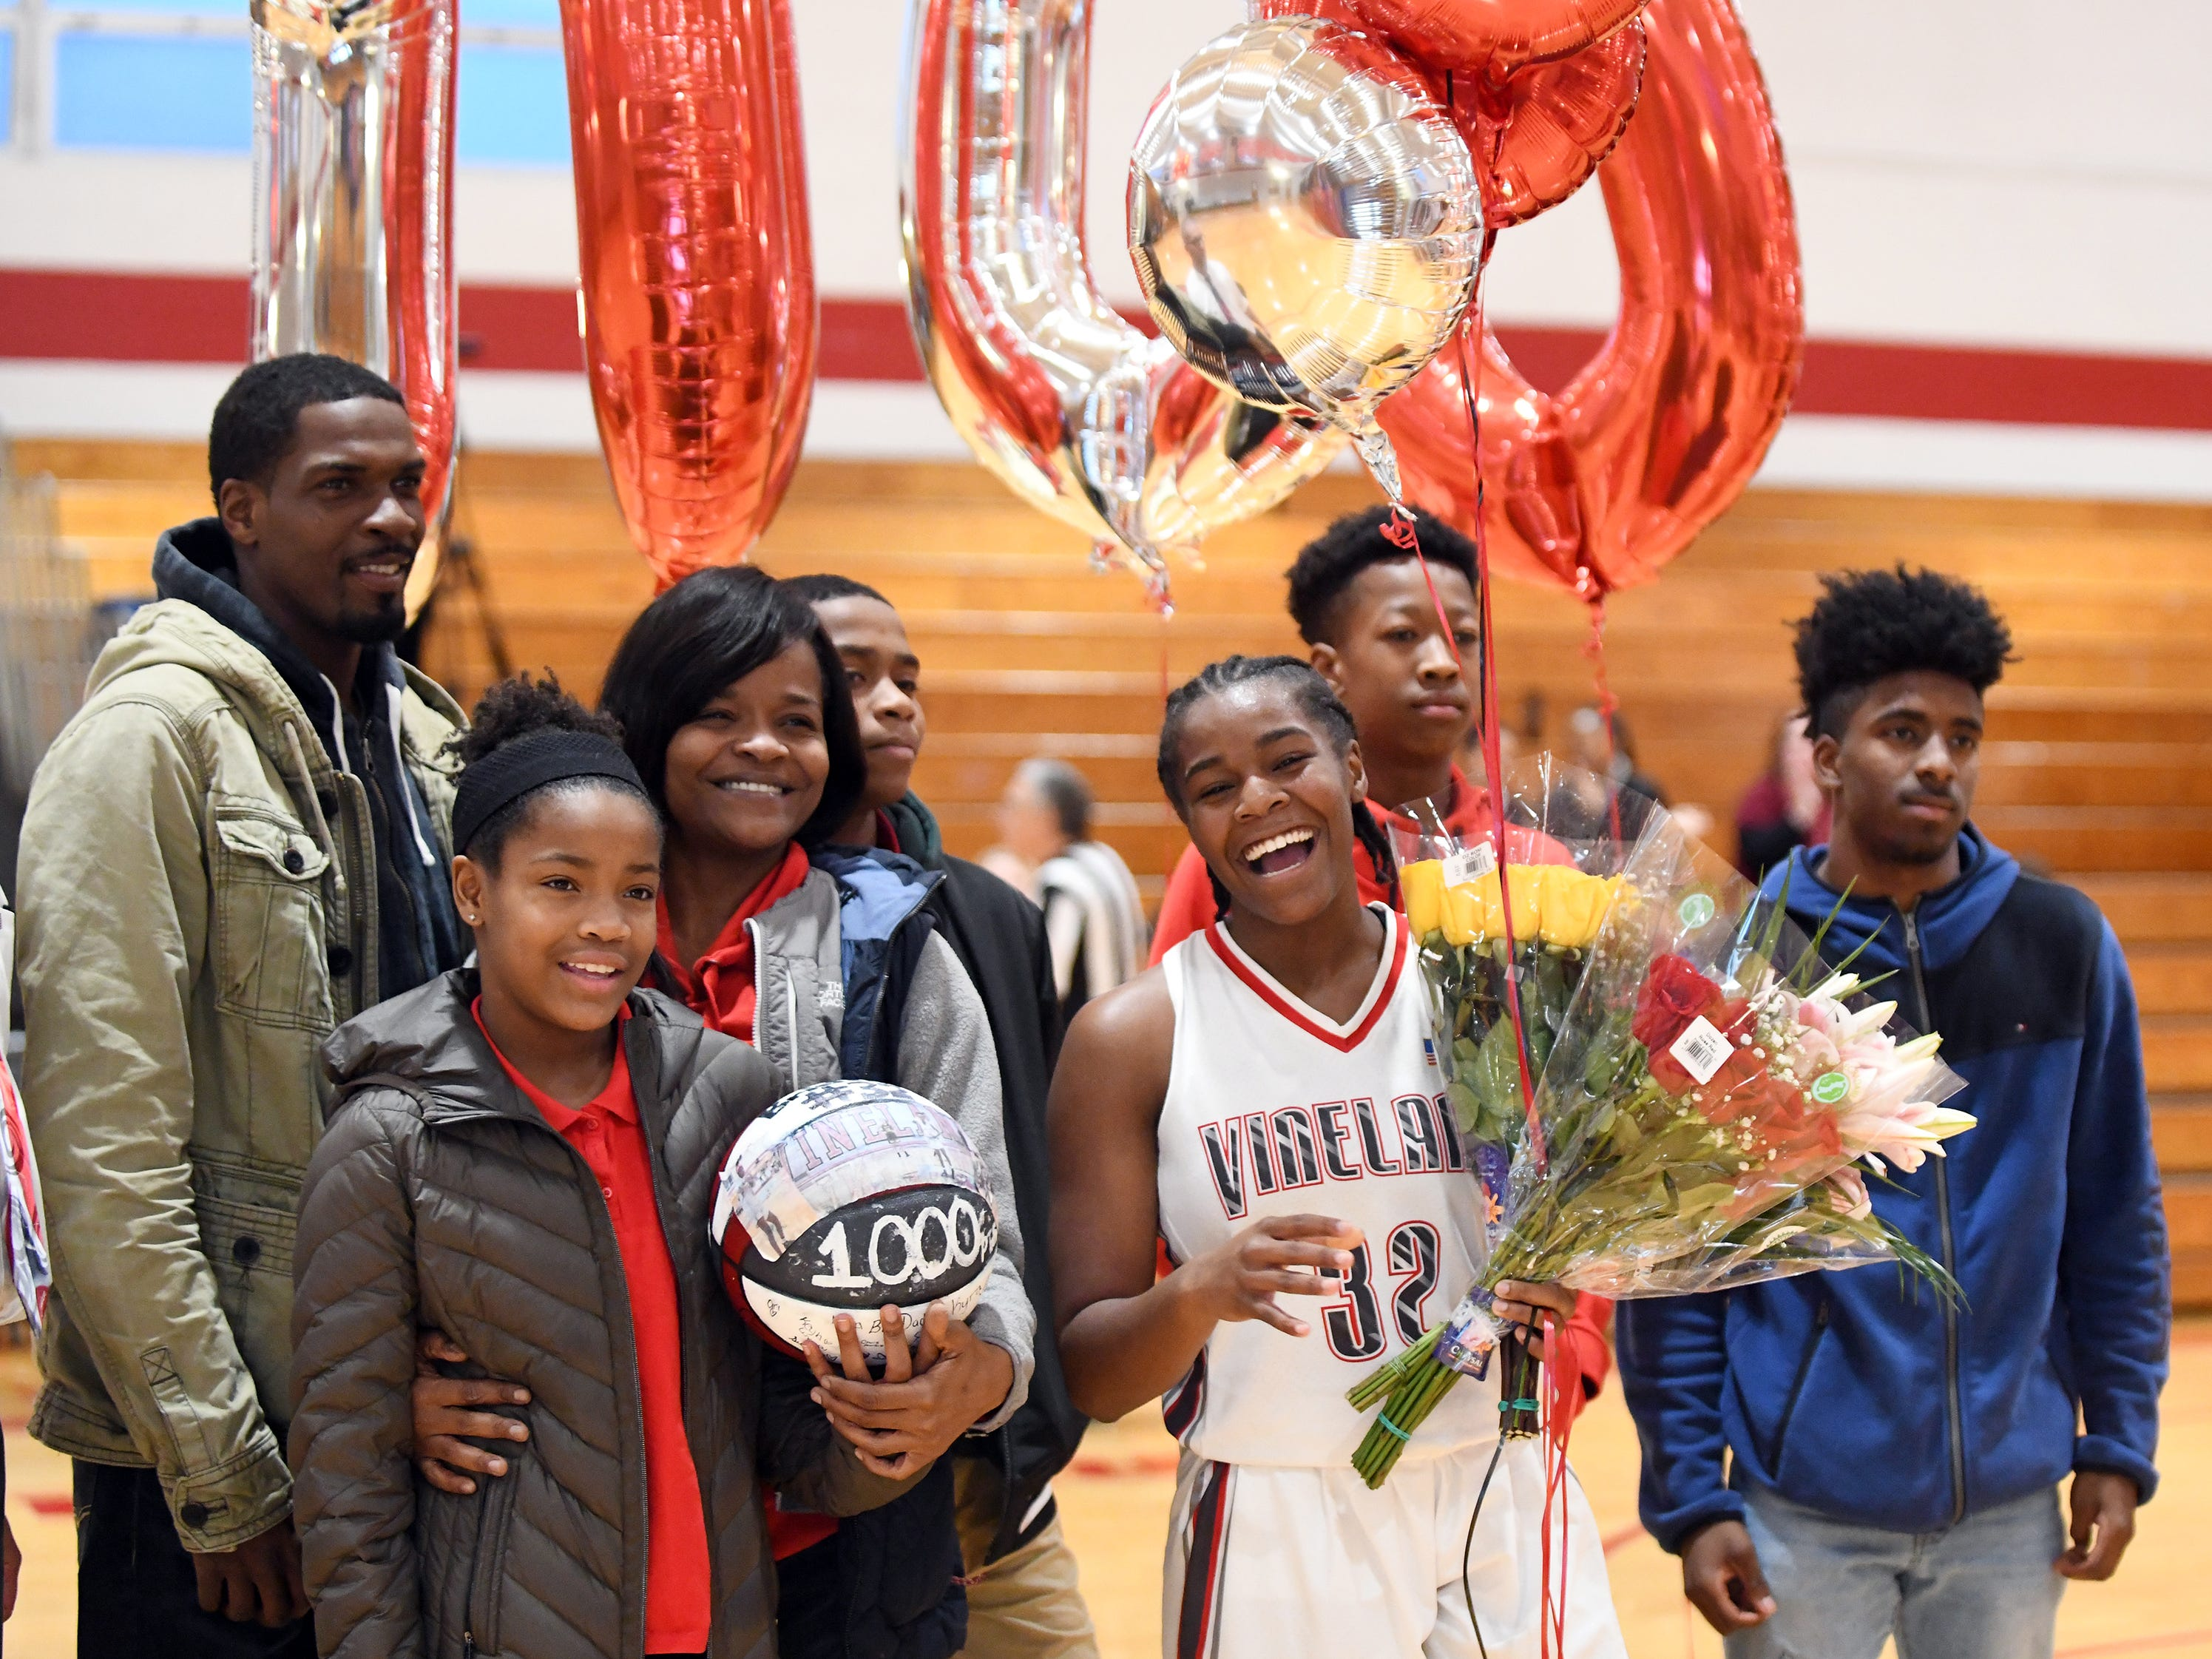 Vineland High School senior Briel Herbert and her family pose for a photo after Briel scored her 1,000th career point during a game against Millville. The Fighting Clan defeated the Thunderbolts 57-35 on Wednesday, Jan. 16, 2019.